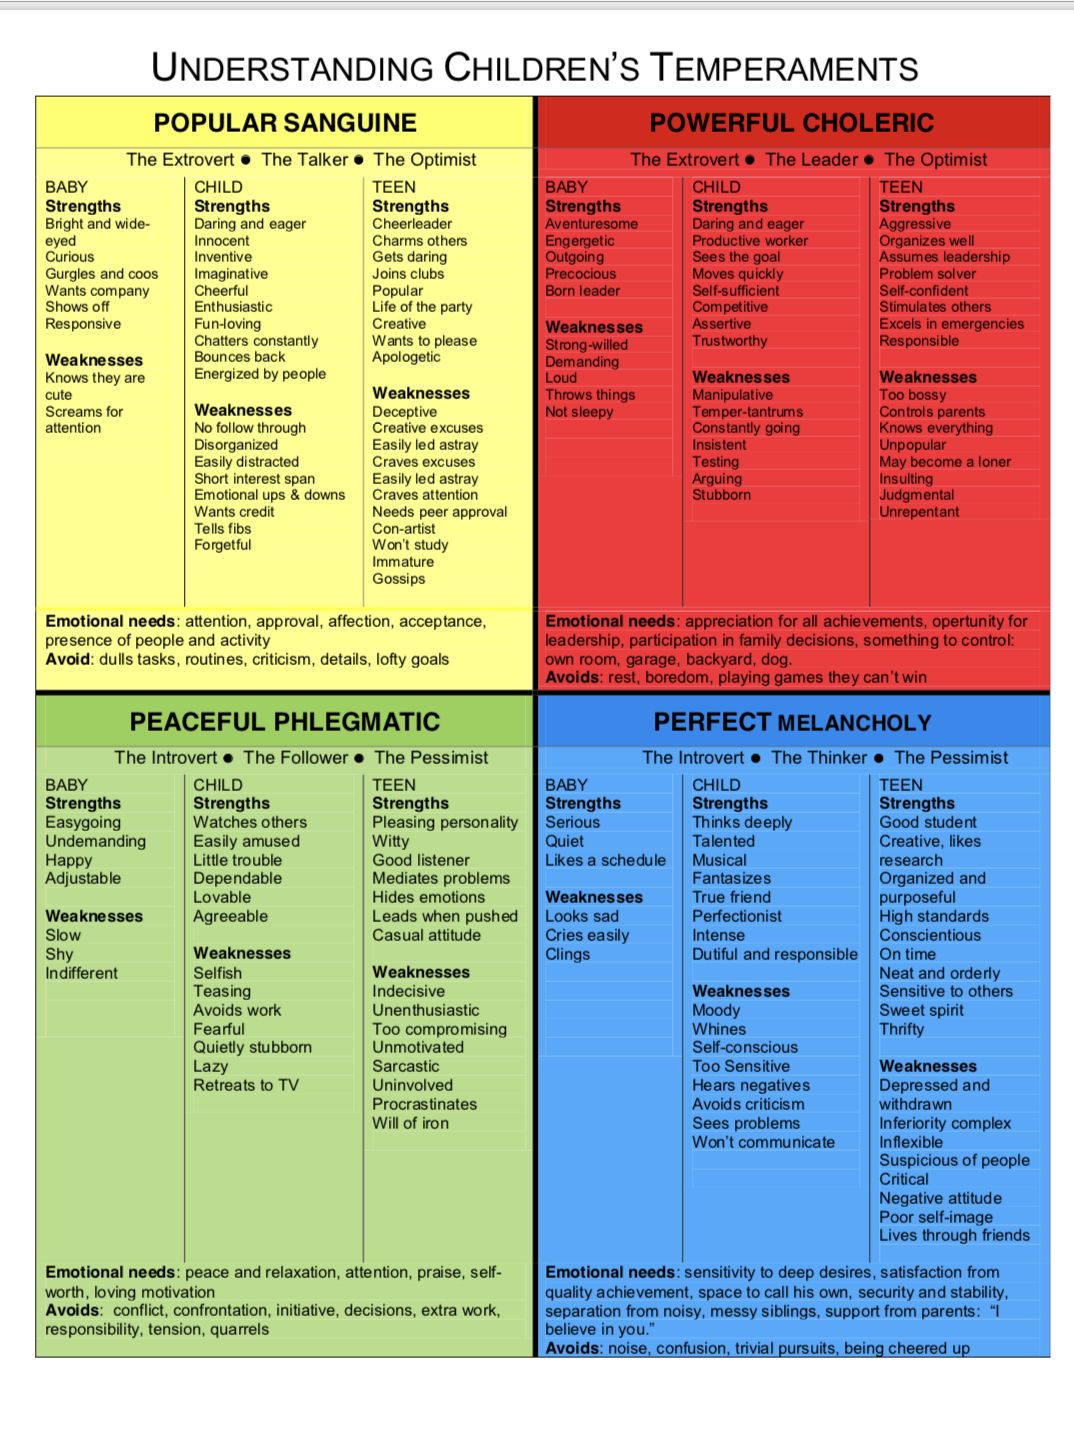 Pin By Jessica Beecham On Personality Junkie Phlegmatic Personality Motivation Theory Temperament Types [ 1435 x 1074 Pixel ]